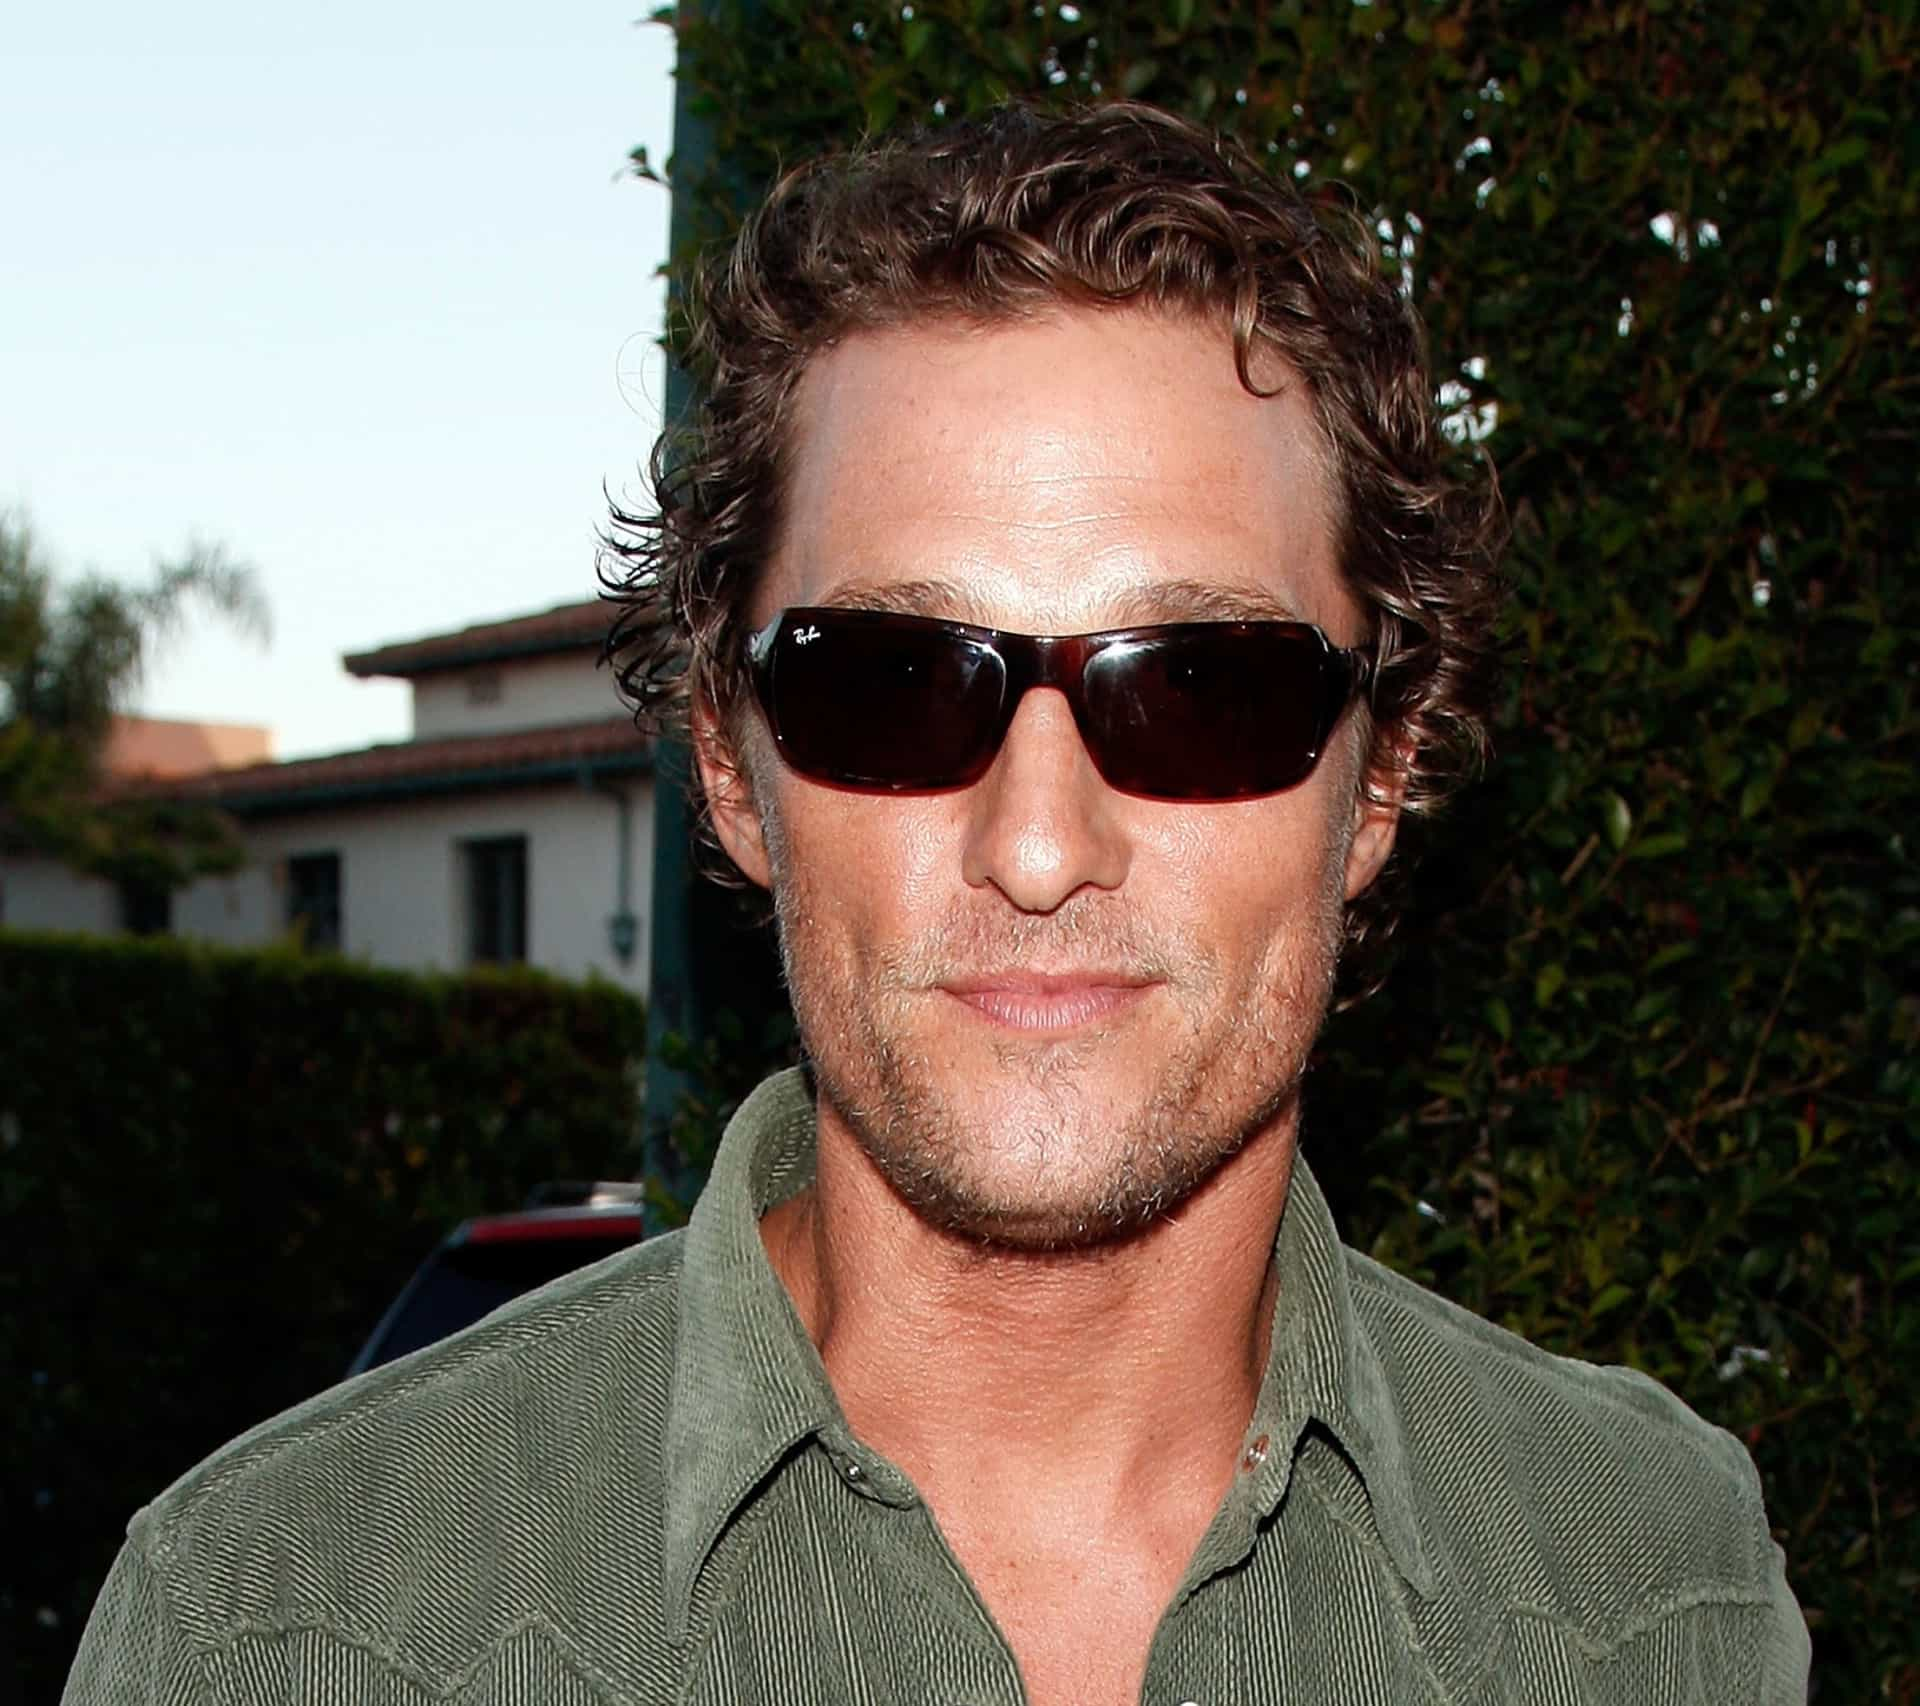 Matthew McConaughey: O camaleão de Hollywood